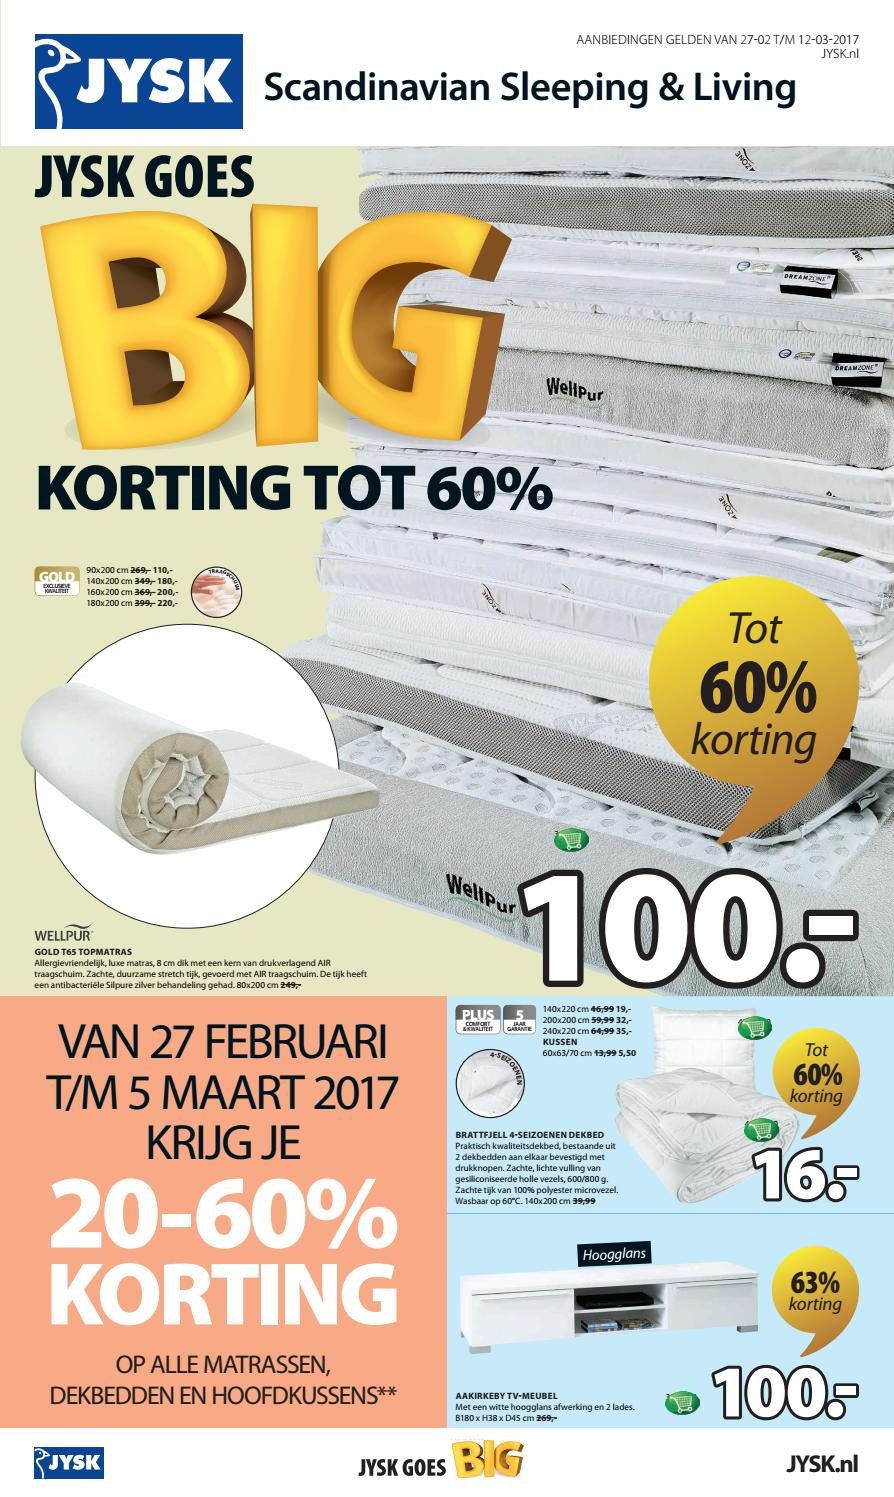 Tv Meubel Aakirkeby 2 Lades Hoogglans.Cp1009 20170301 Jysk Goes Big By Publisher 81 Nl Issuu